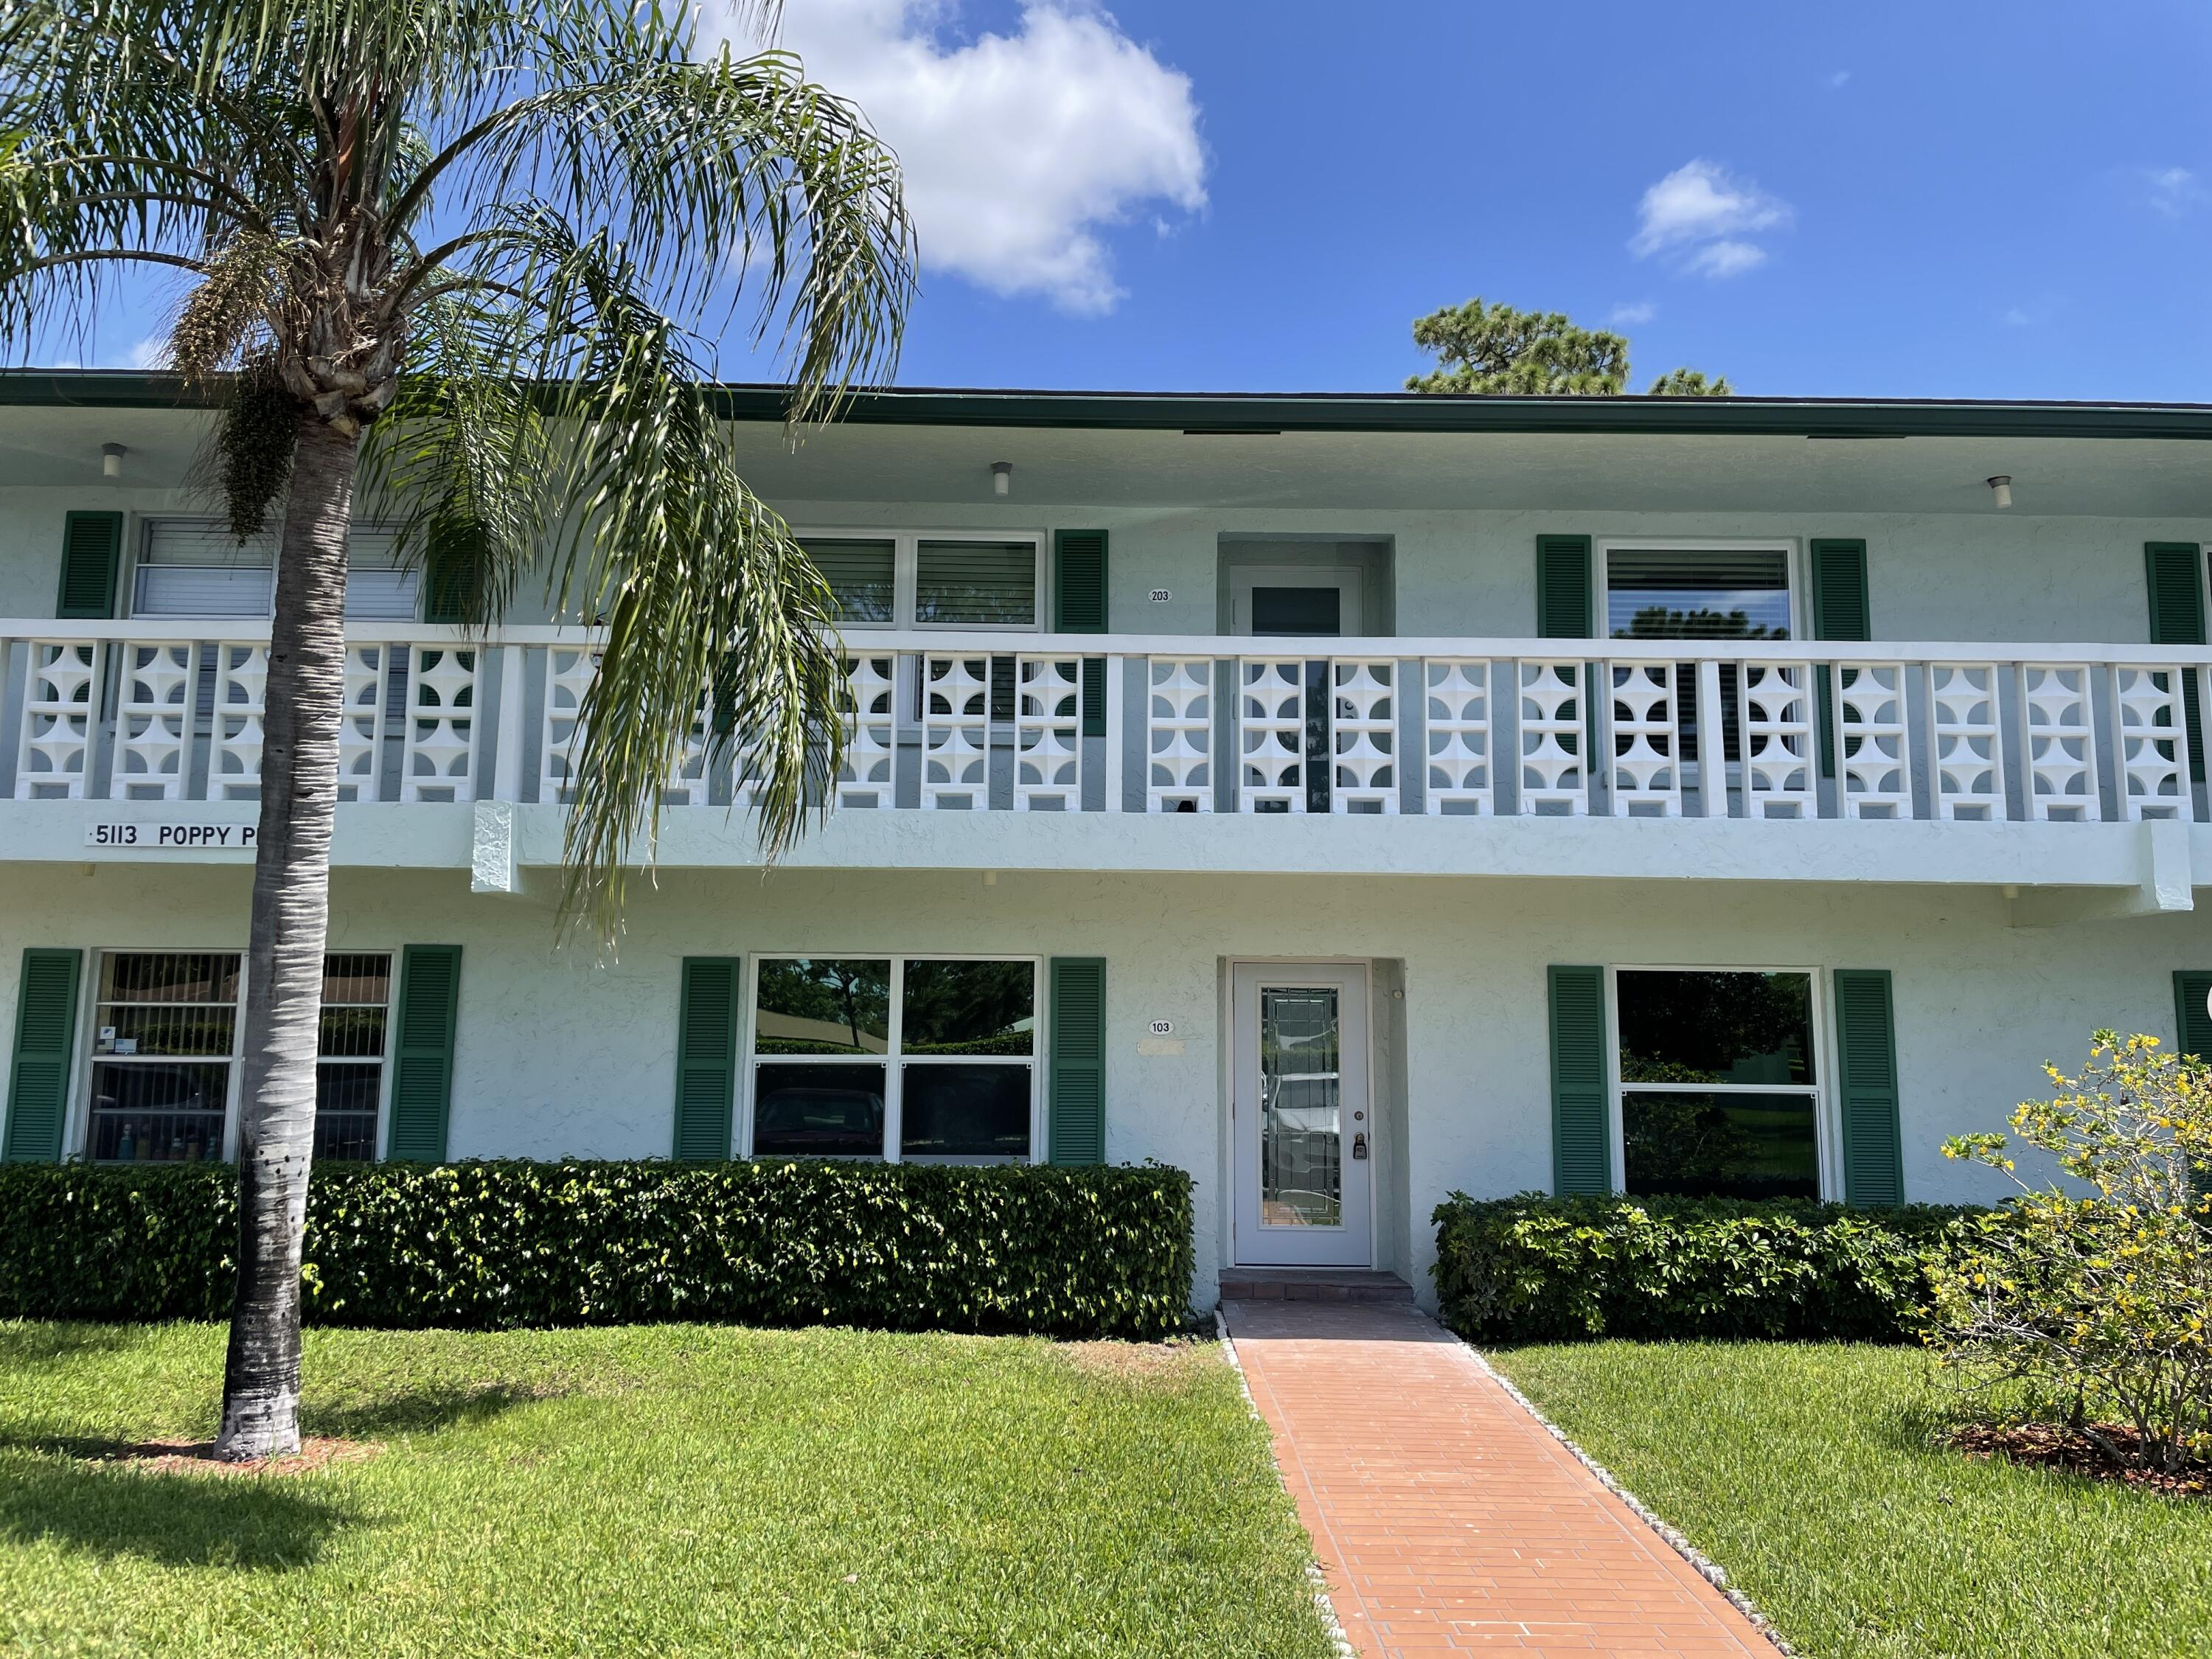 5113  Poppy Place 103 For Sale 10718736, FL